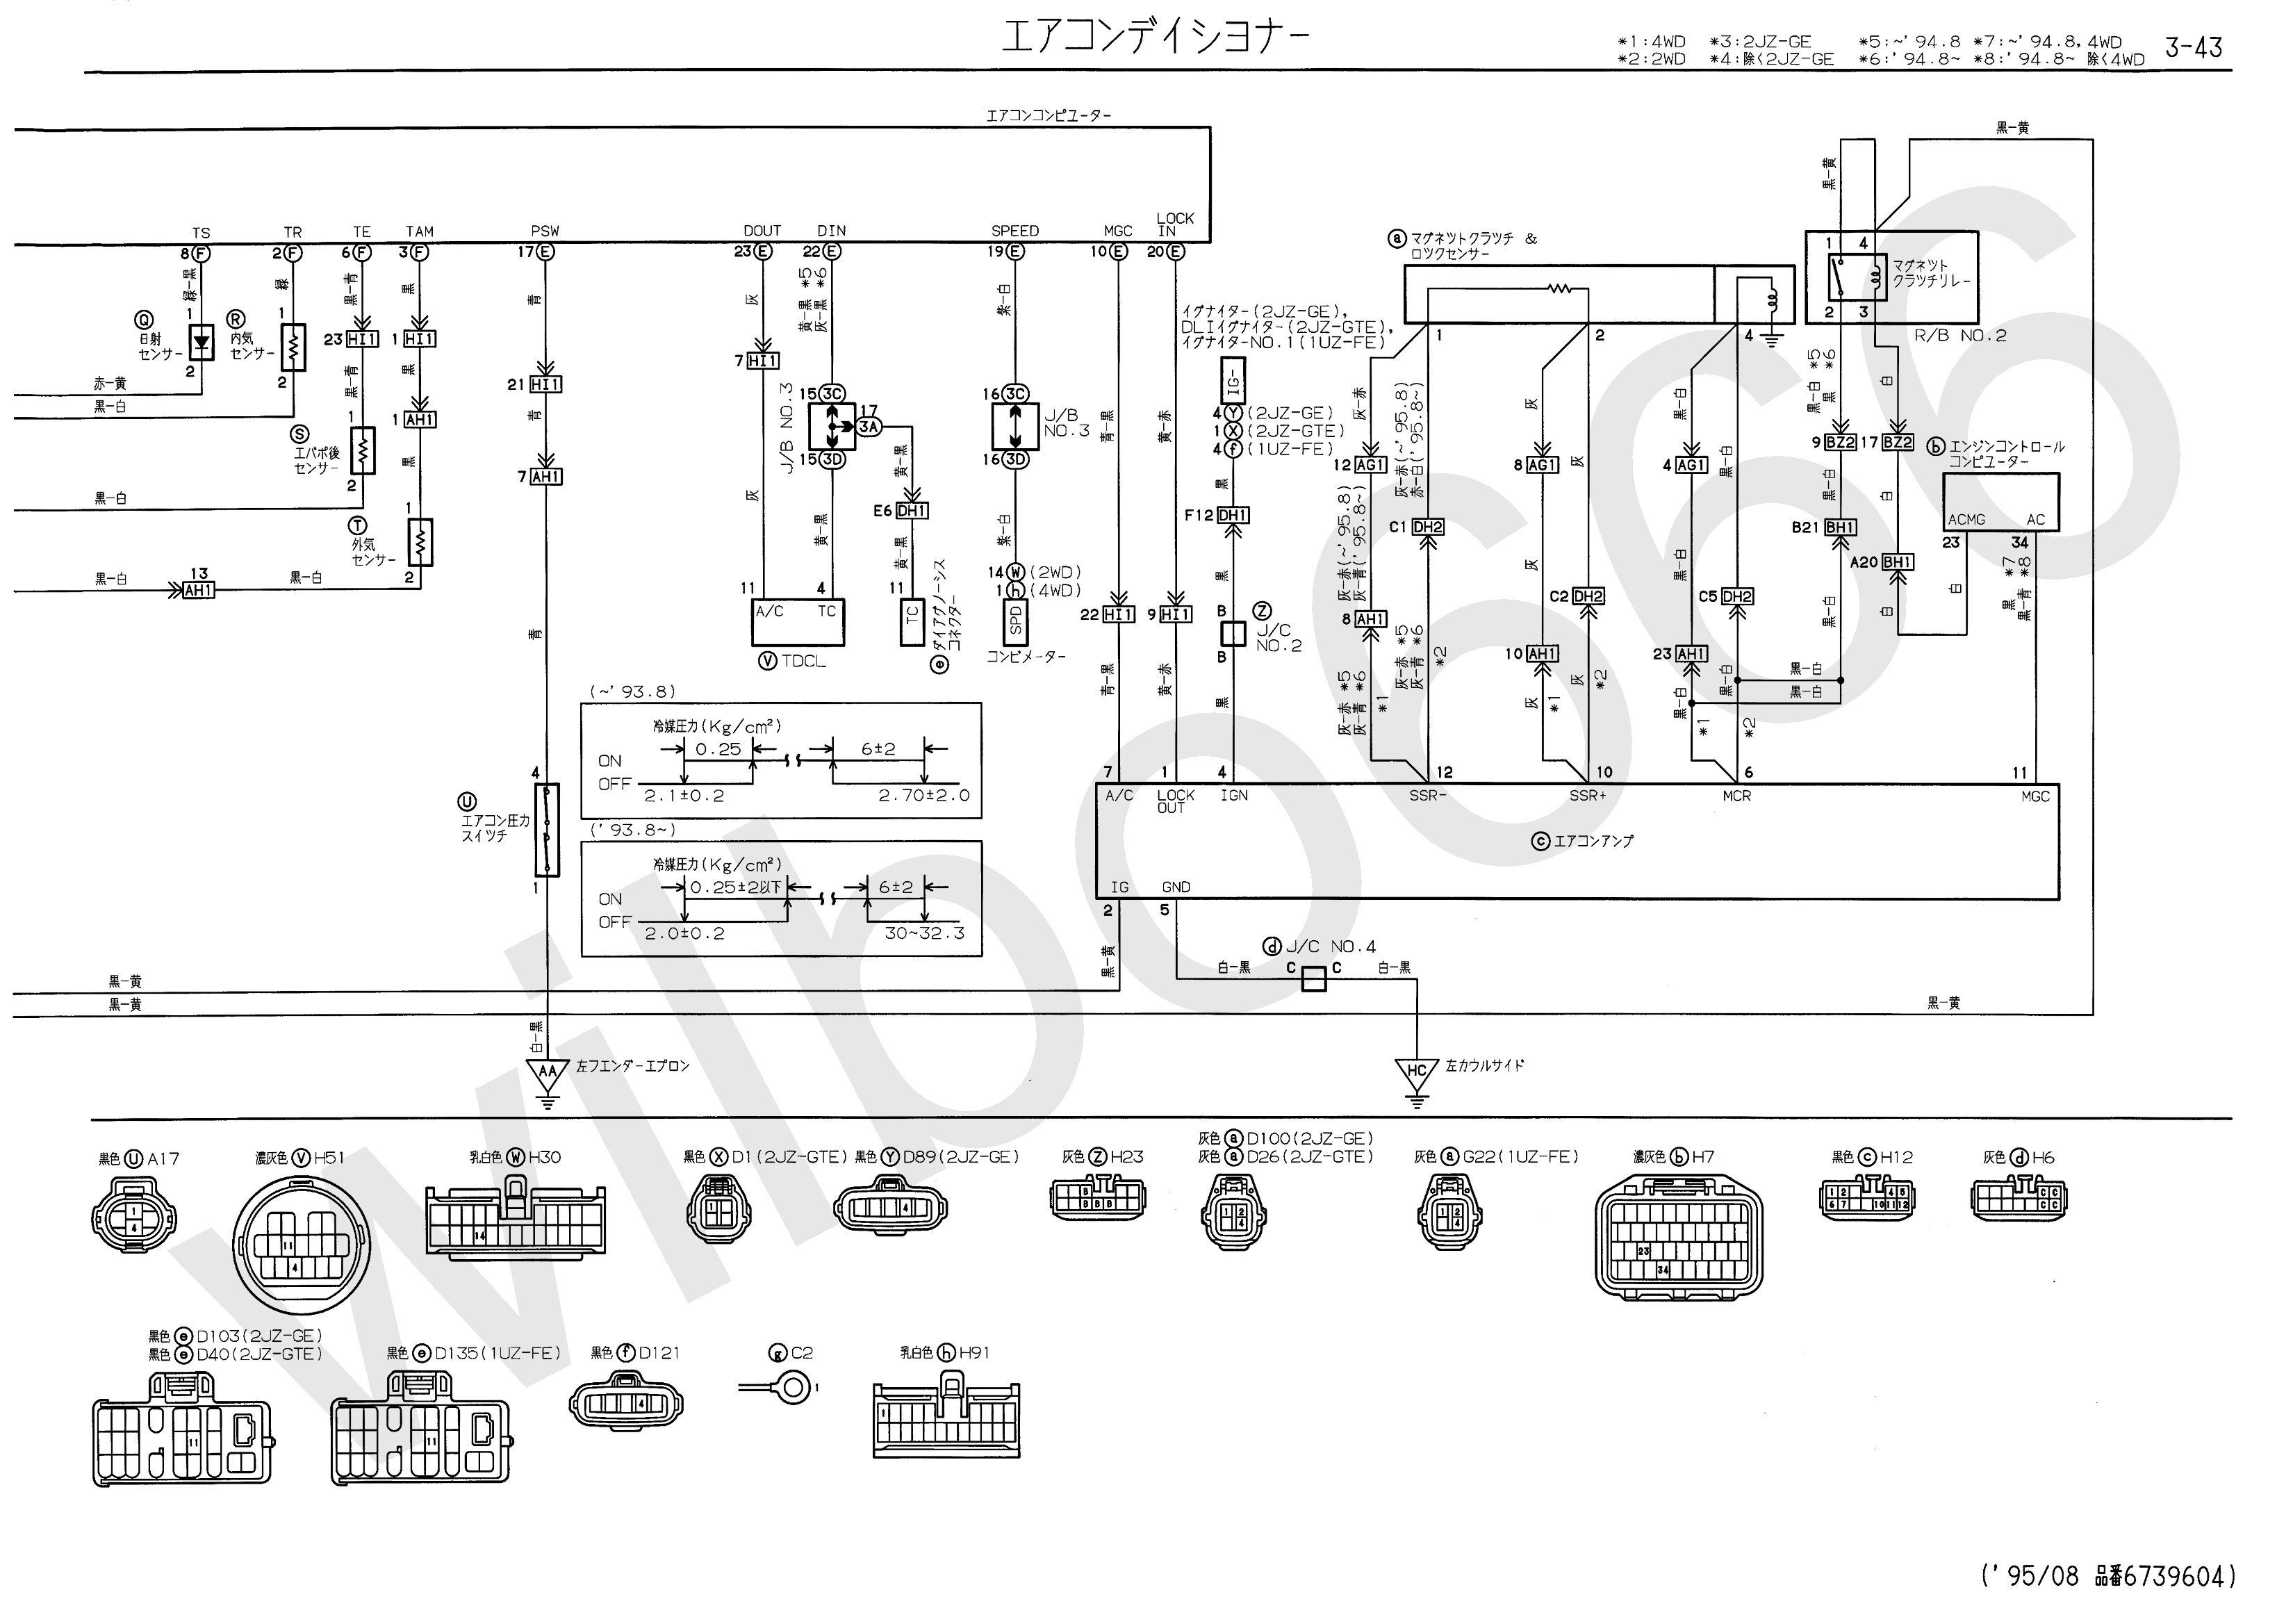 2jz Ge Engine Diagram Schematics Wiring Diagrams Wilbo666 Jzs147 Rh Pbworks Com Gte